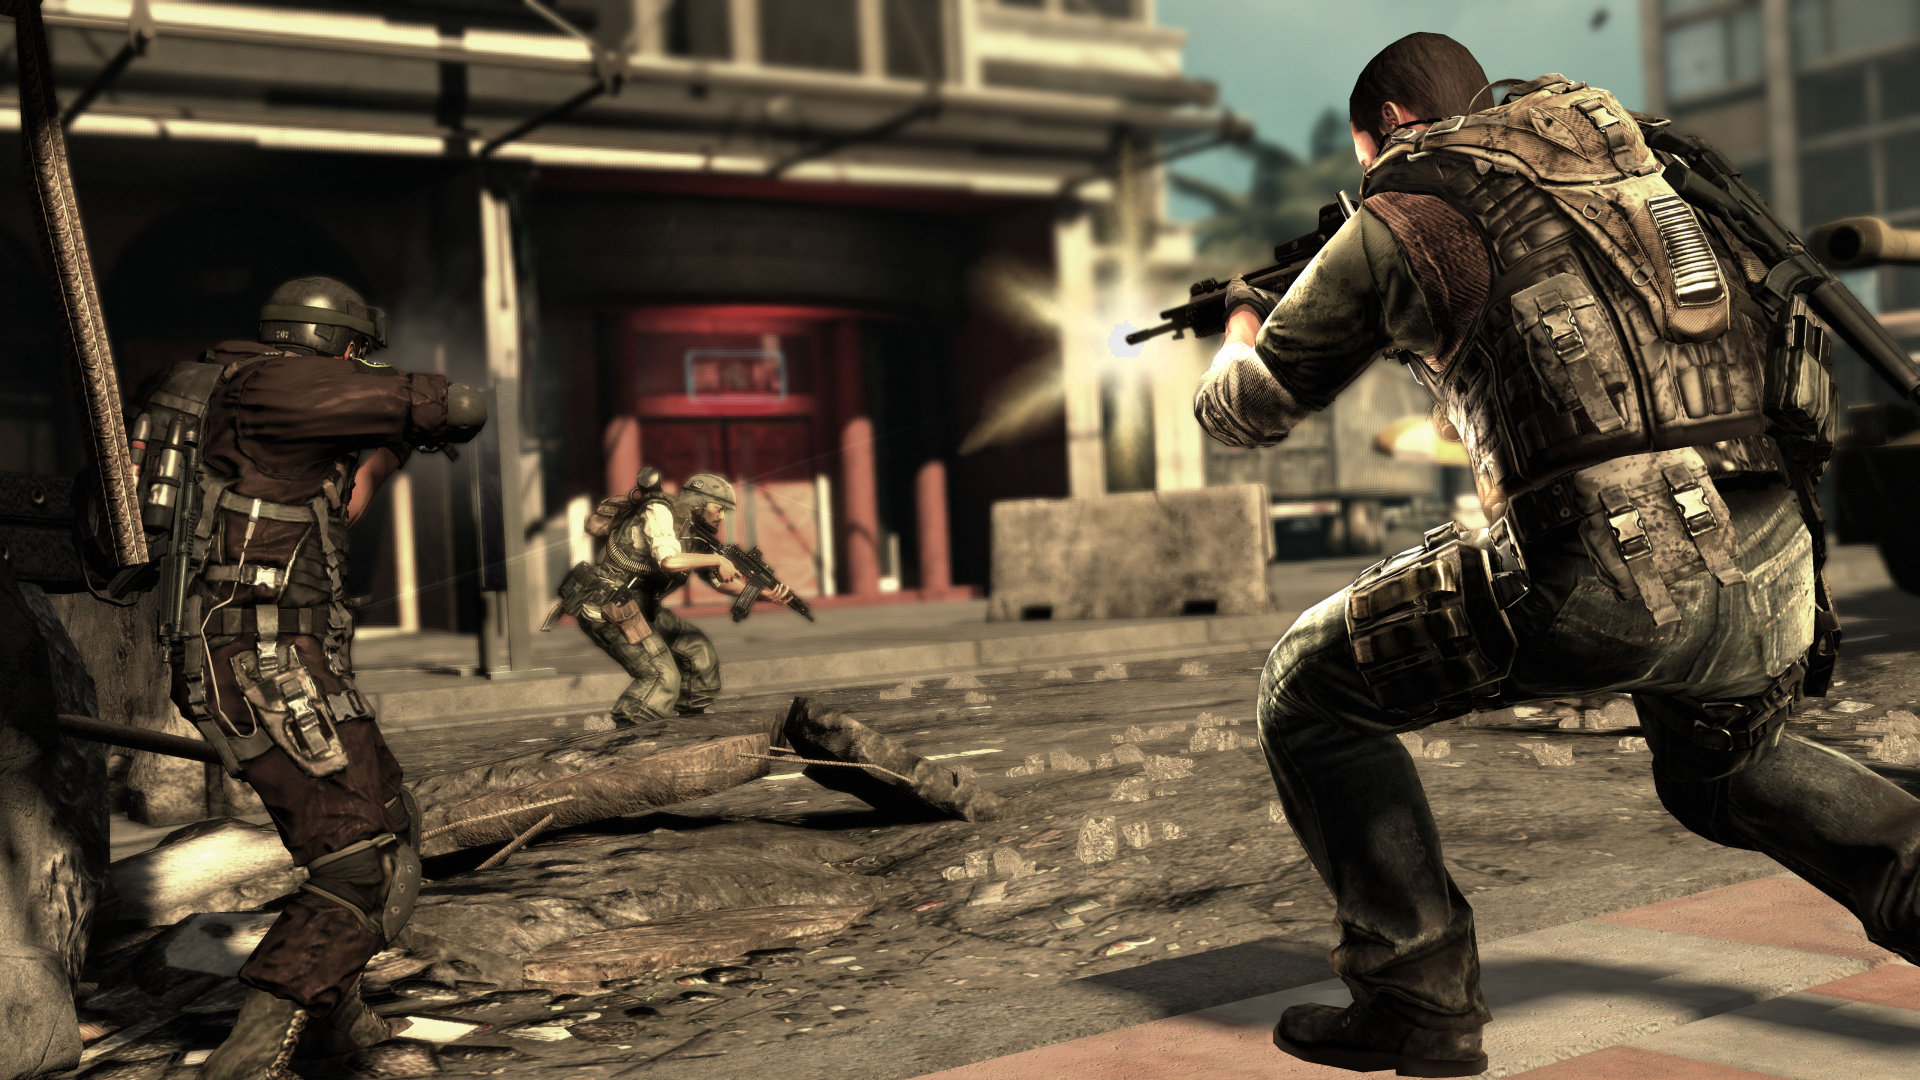 3d Action Game Wallpaper Socom Special Forces Ps3 Playstation 3 News Reviews